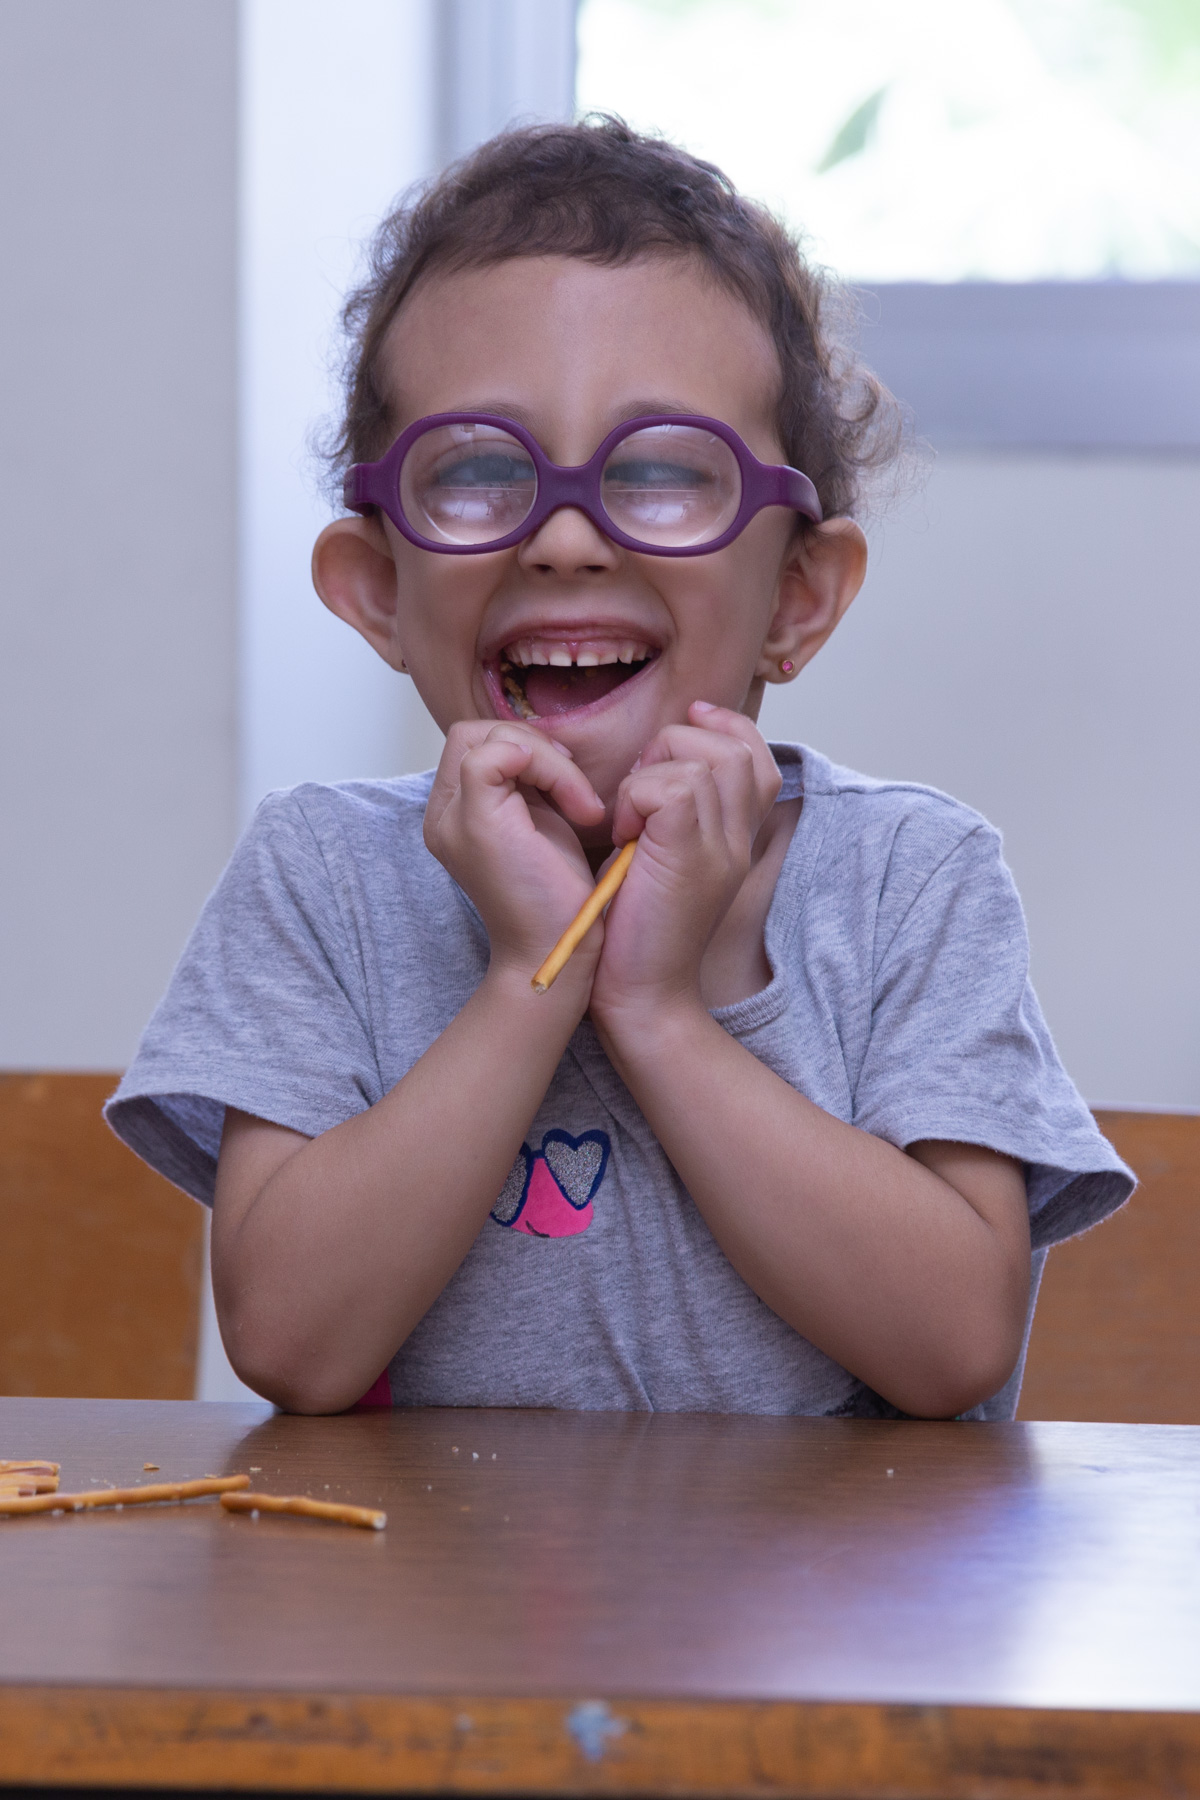 A child in bright purple eyeglasses smiles enthusiastically at the camera with their chin on their hands. The child is sitting at a wooden table with some pretzel sticks in front of them.